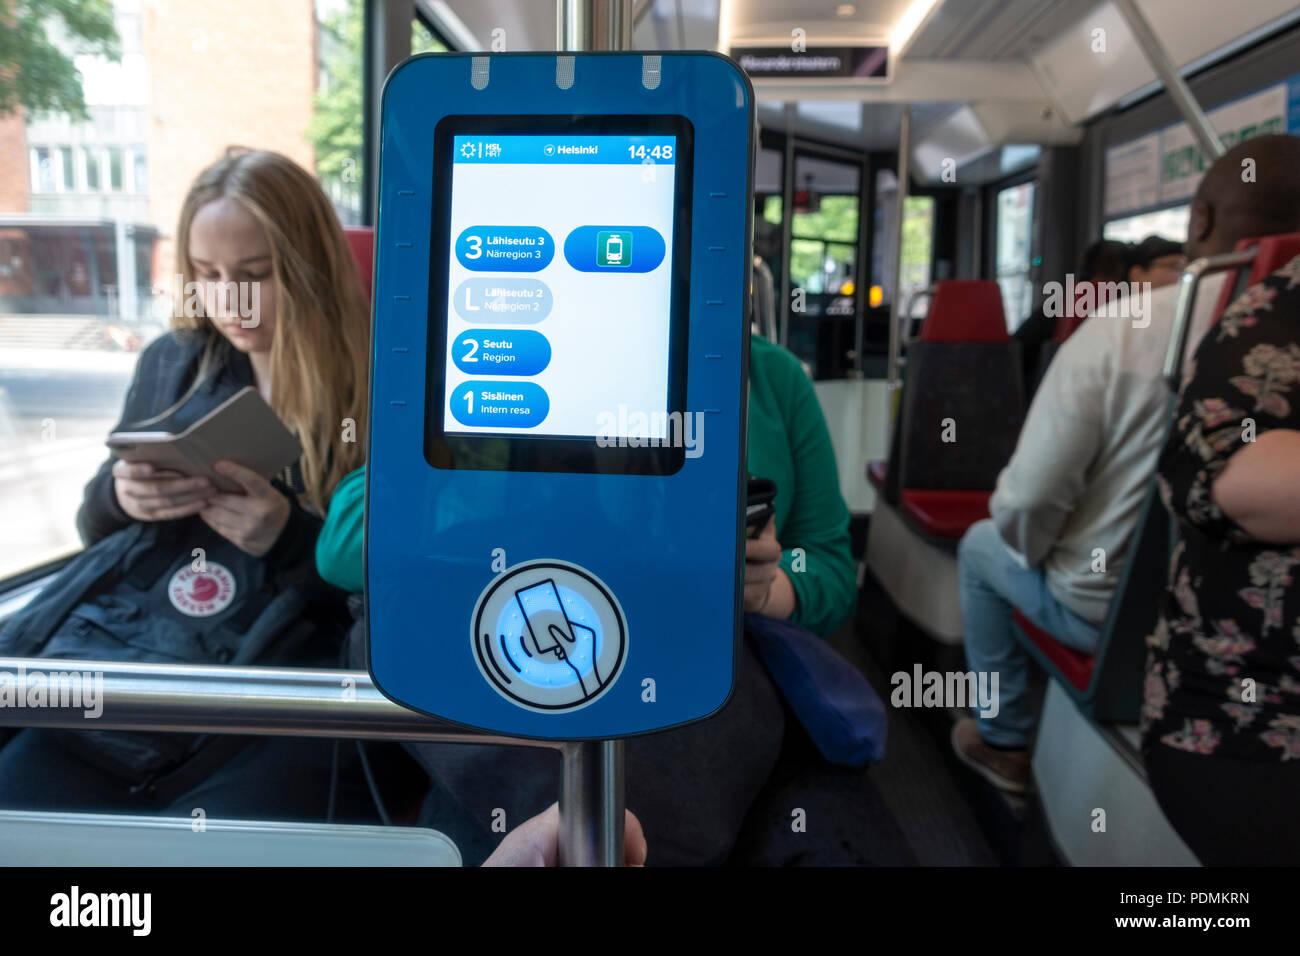 HSL Card and Visitor Card reader in Helsinki Tram. Contactless smart card electronic ticket validator. Tram ticket swiping machine. - Stock Image